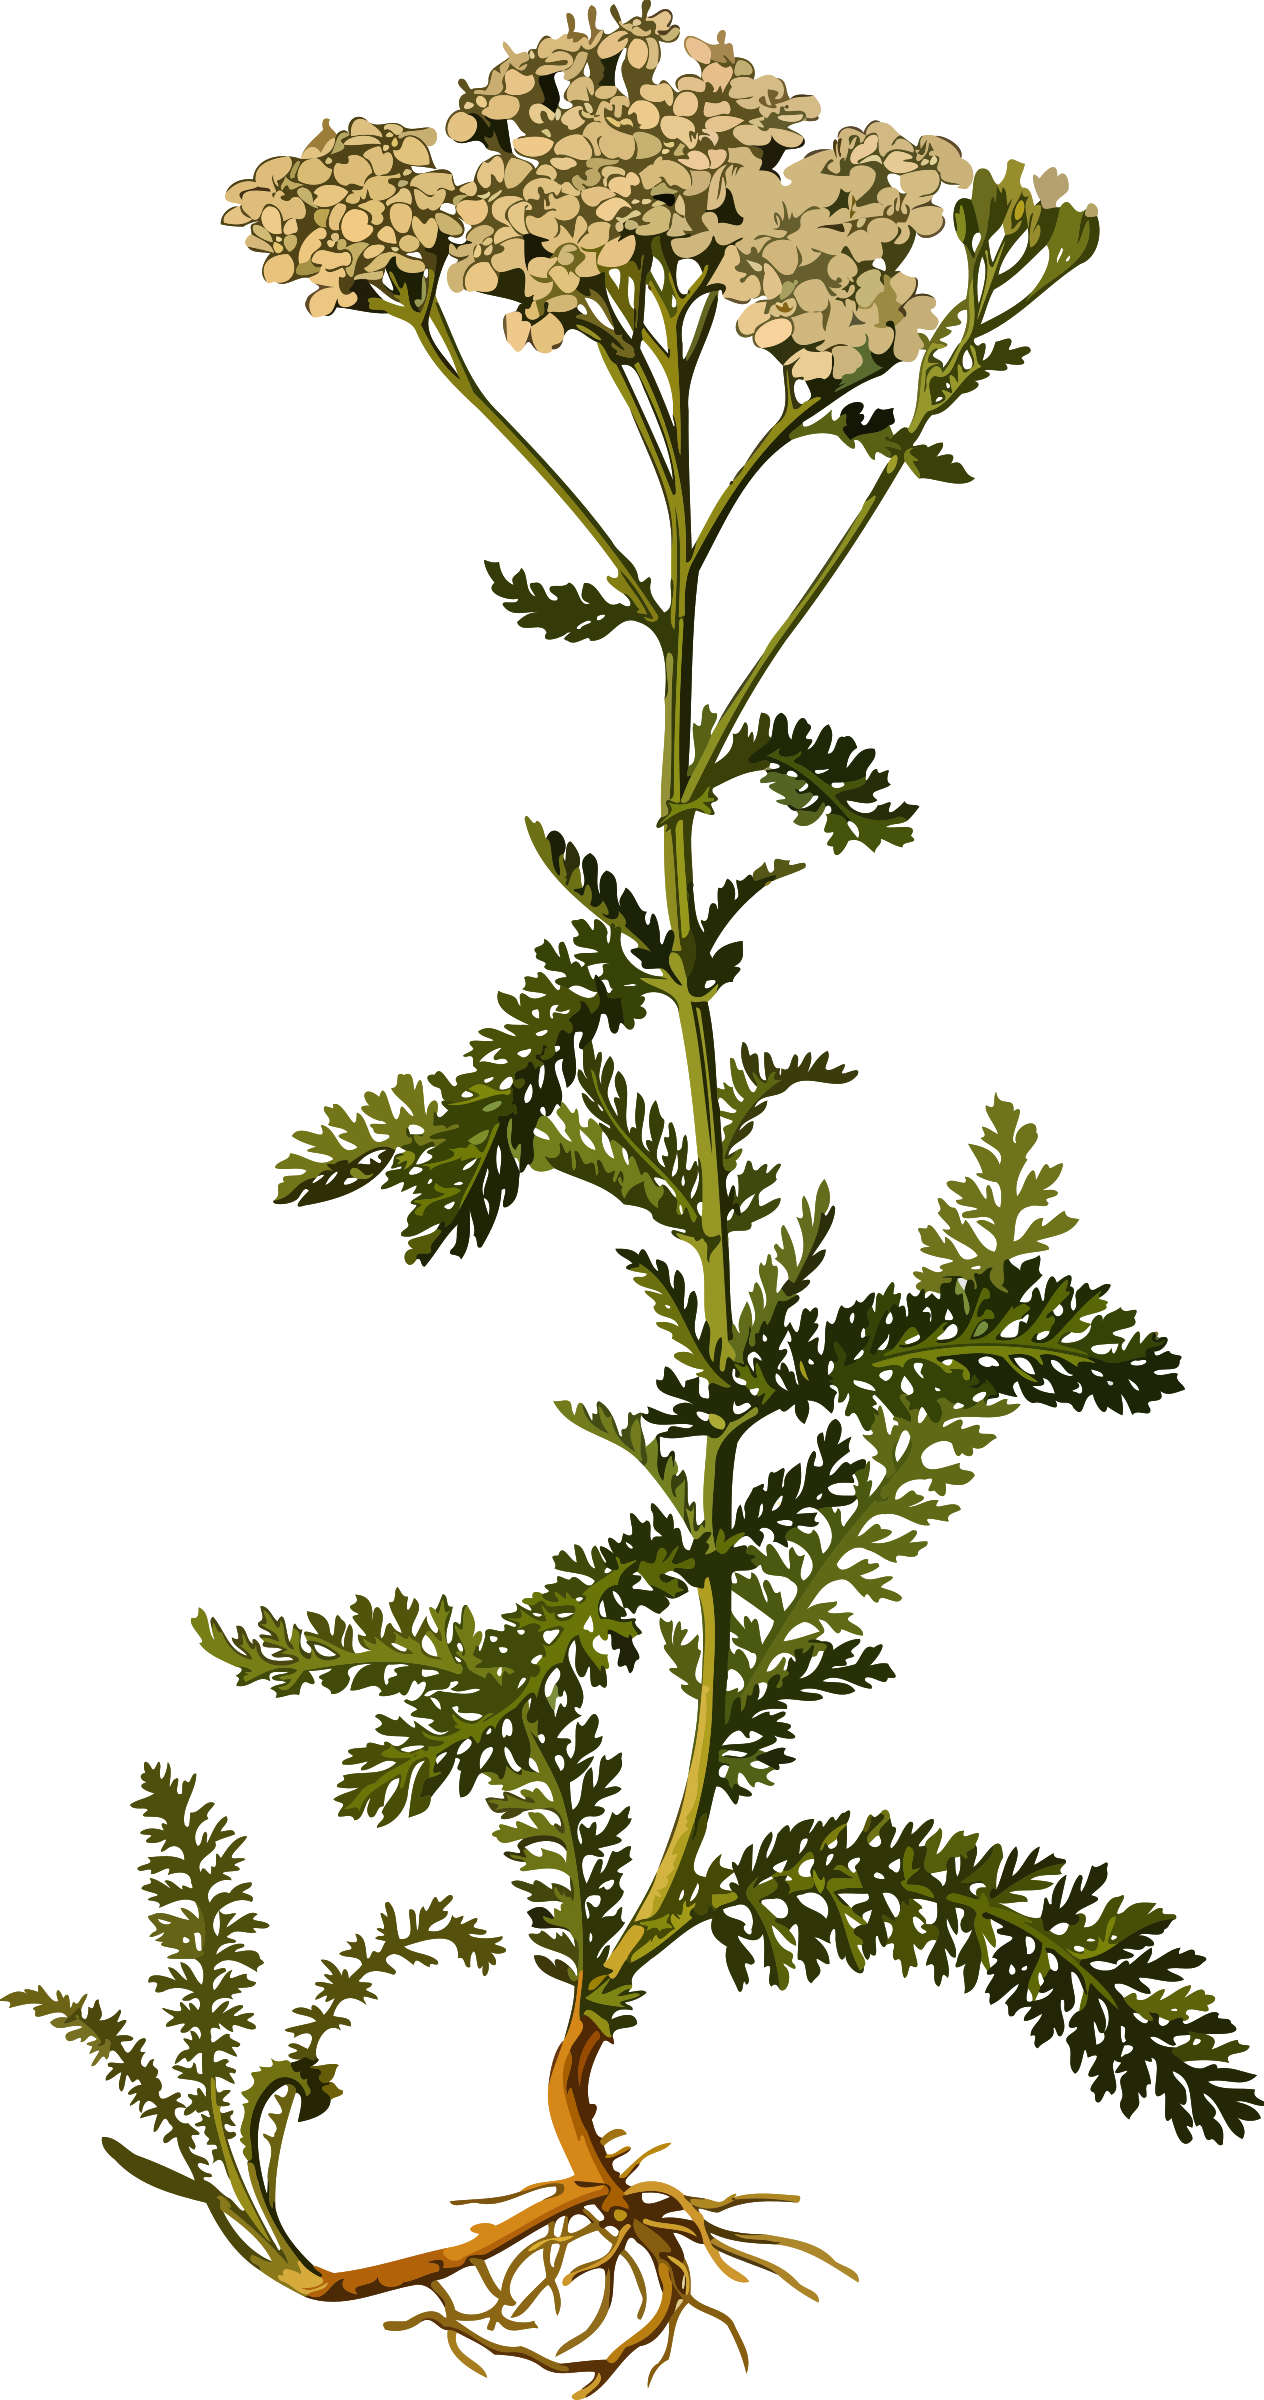 Clipart - Yarrow (smaller file)